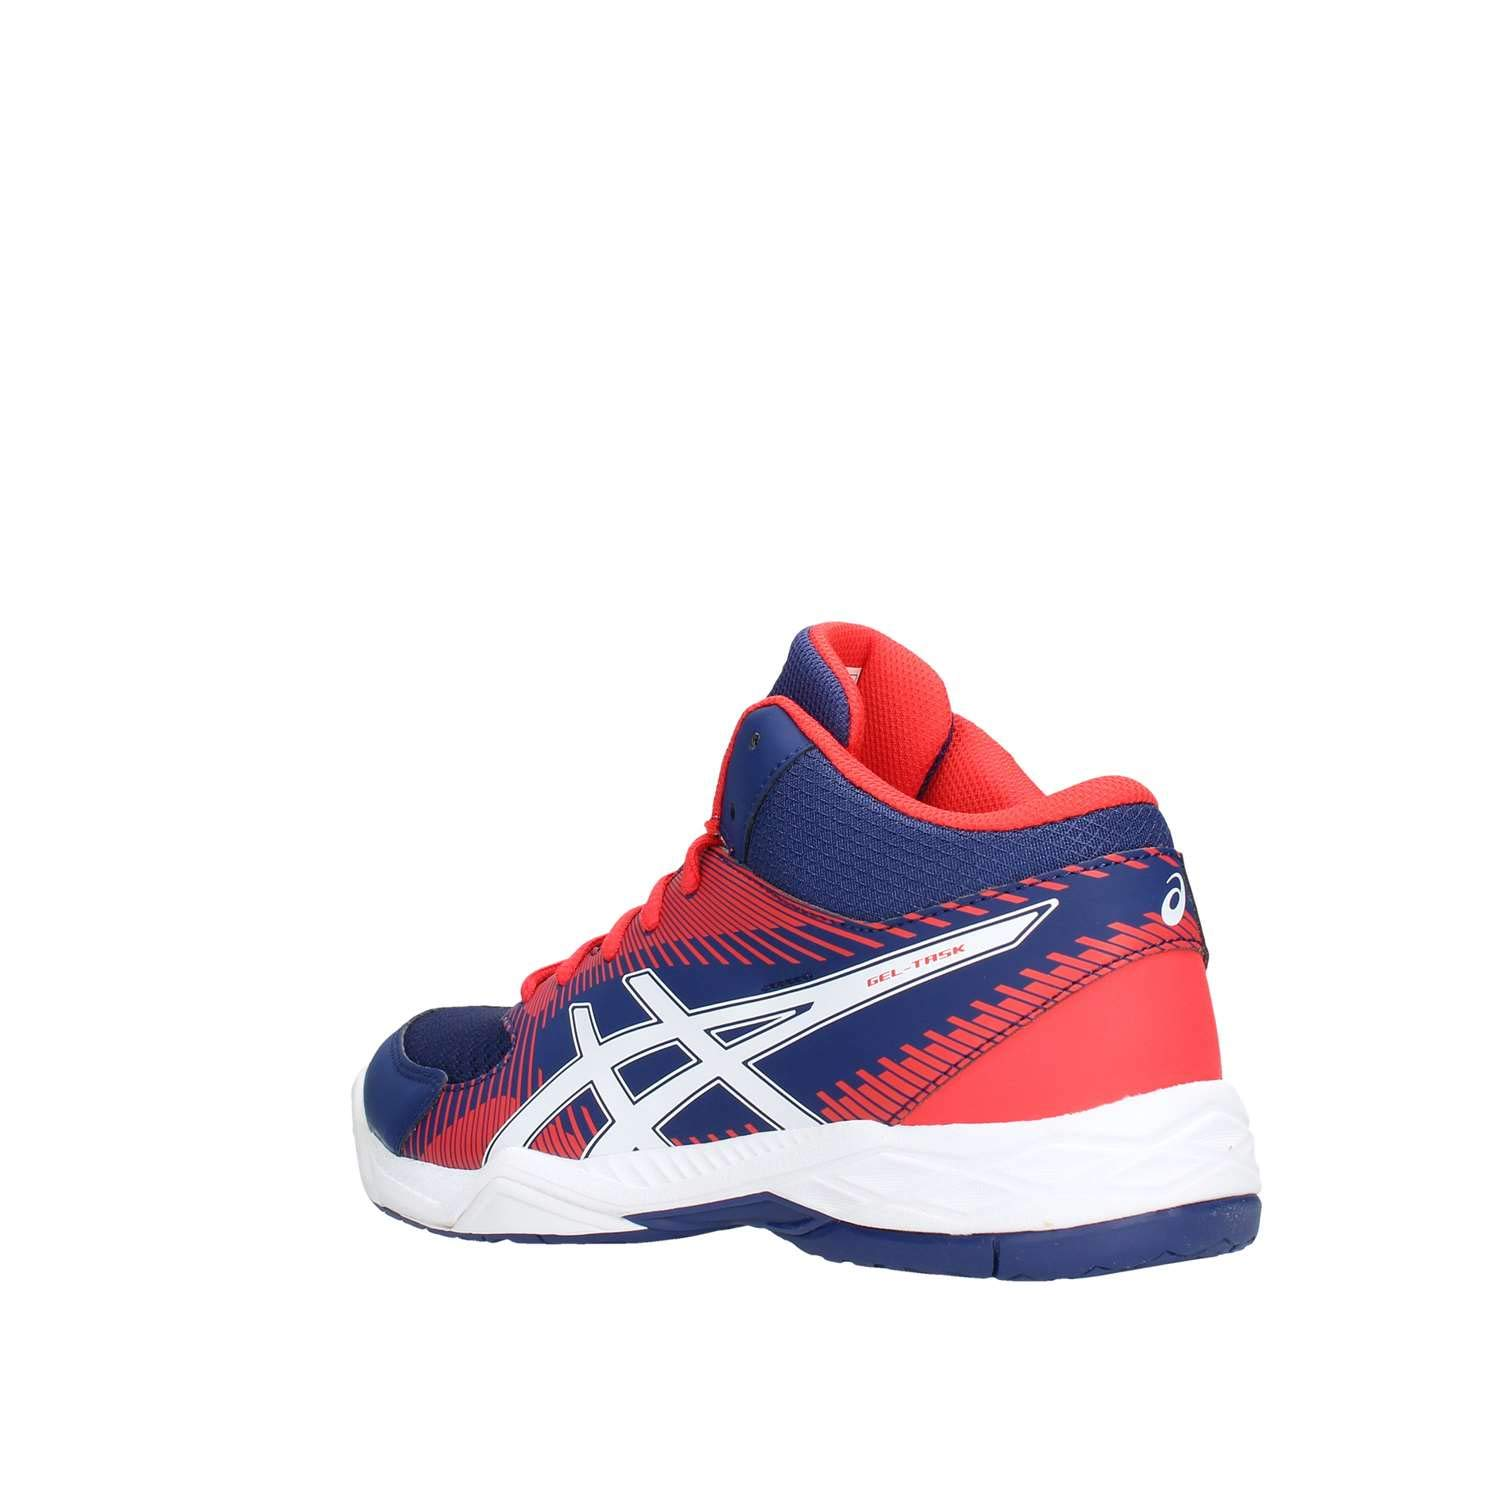 52b1a71df7 Amazon.com  ASICS Men s Gel-Task MT